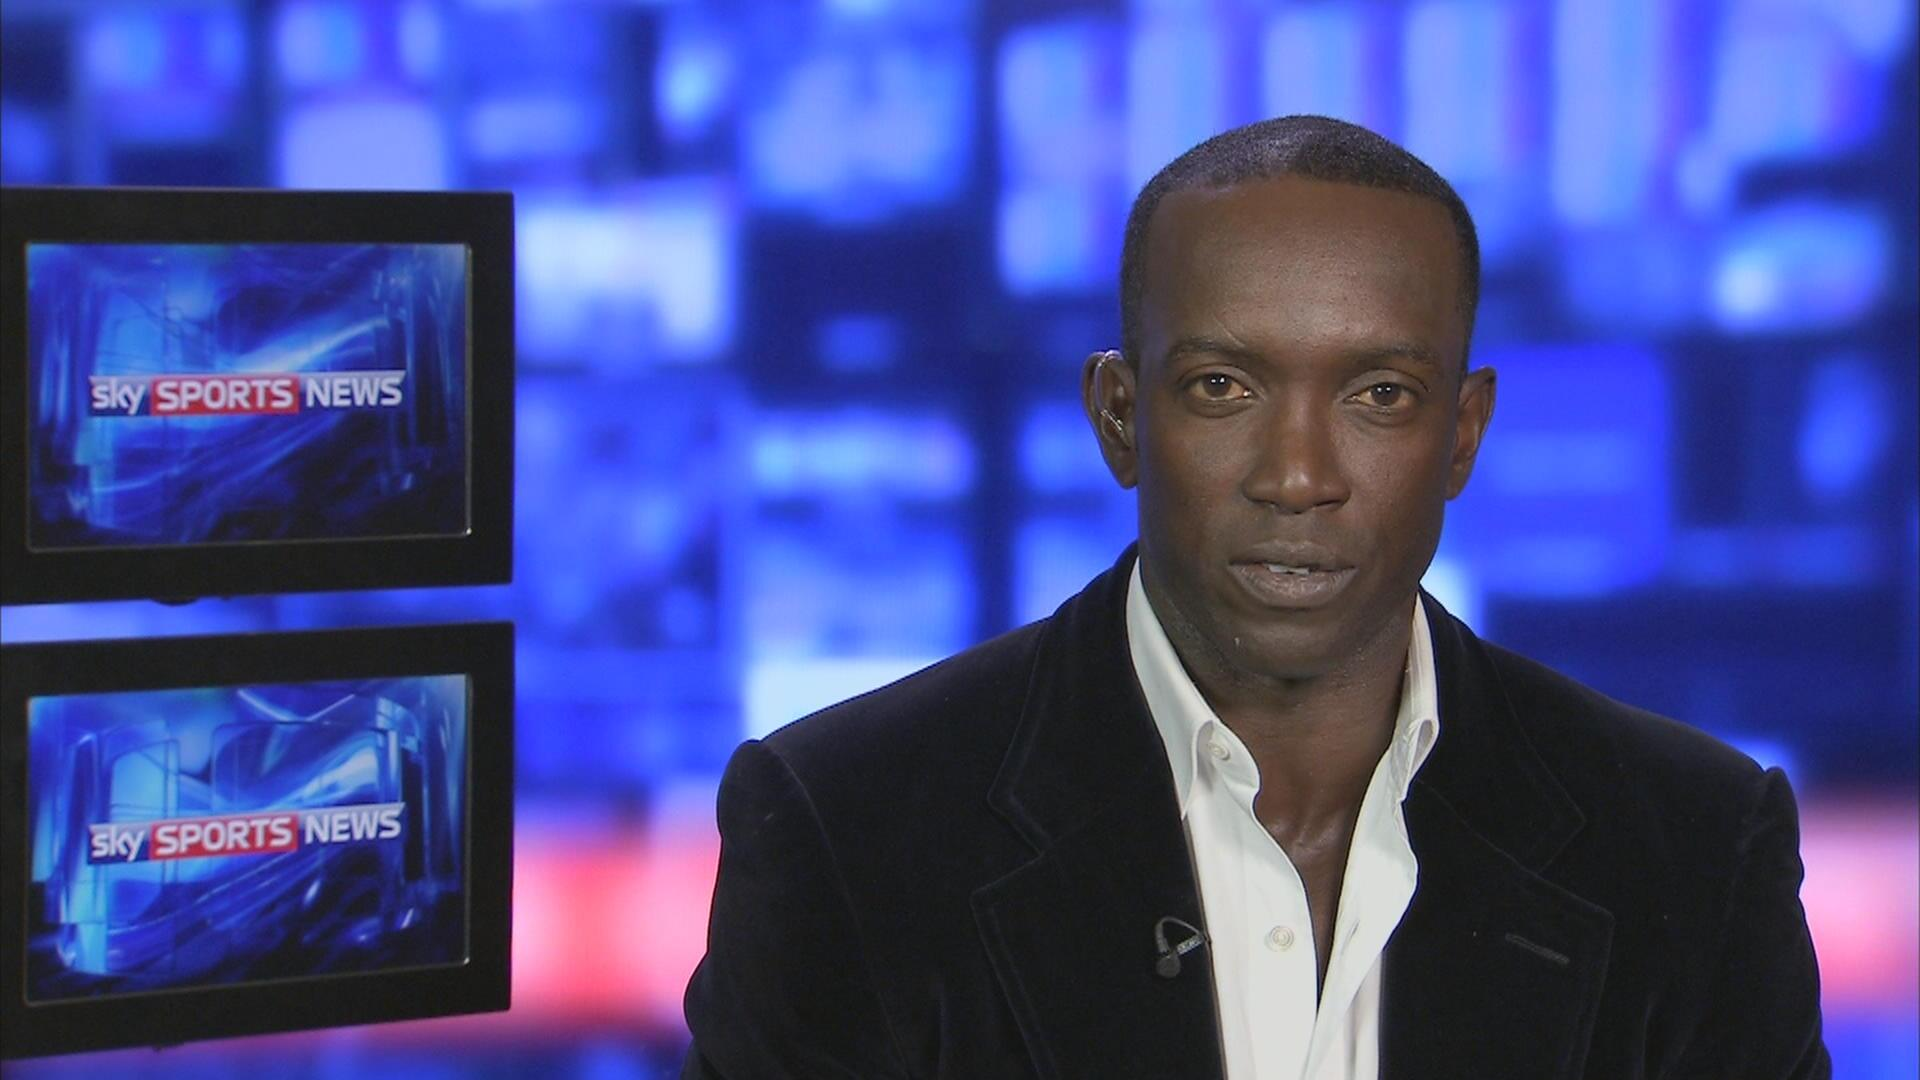 We spoke to Dwight Yorke on Man Utd's form yesterday & if he thinks Giggs should be played more. Give #SSN your views http://t.co/1dbFKaHE0m